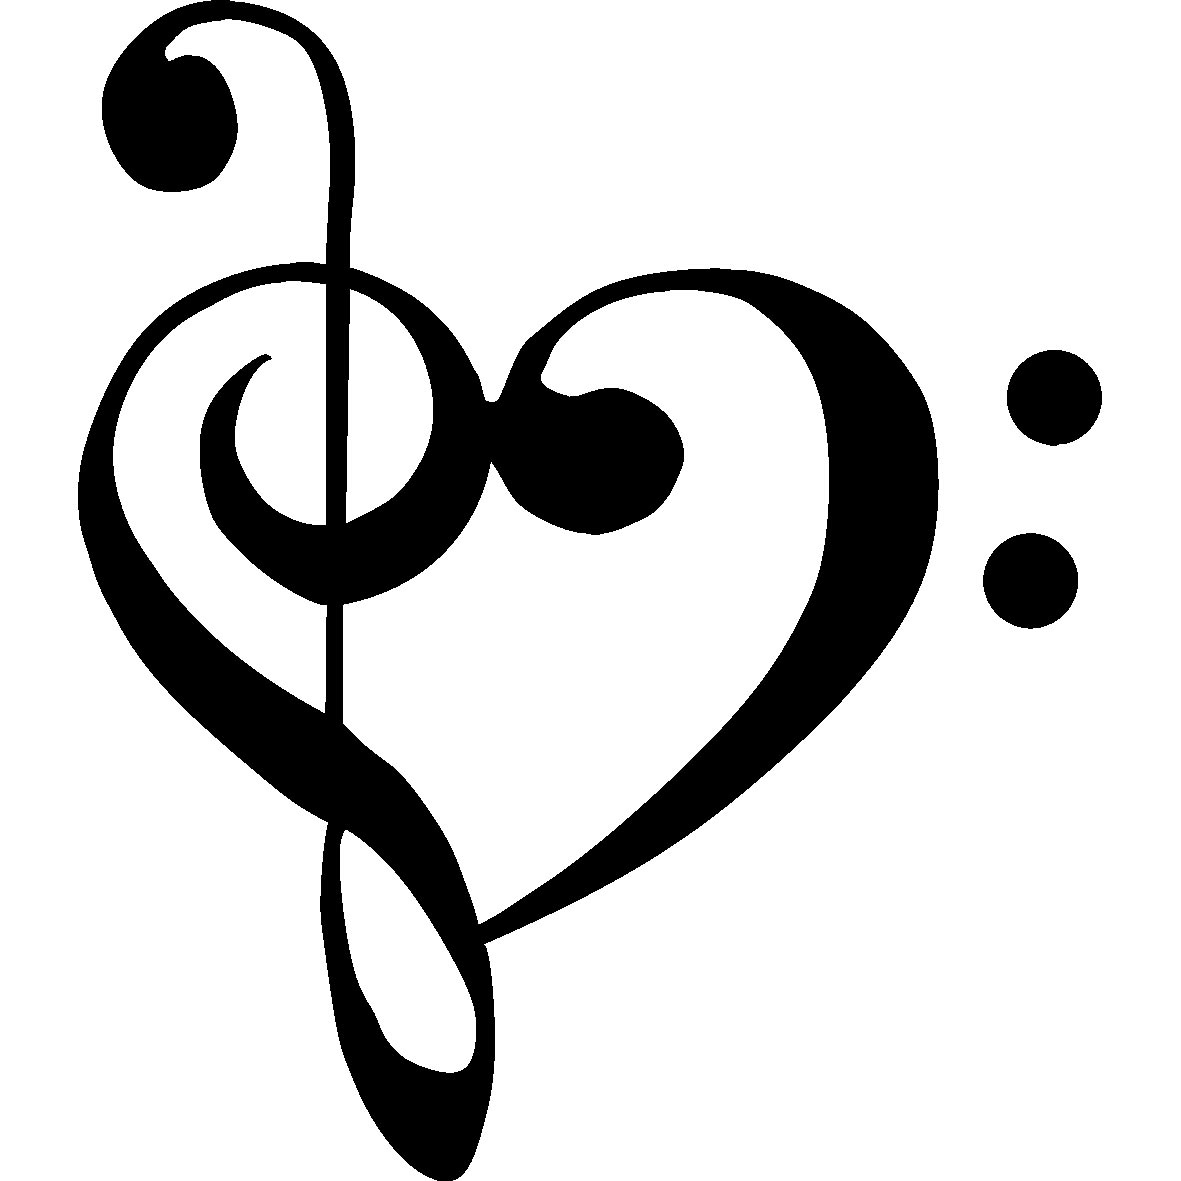 music emblems clipart - photo #17